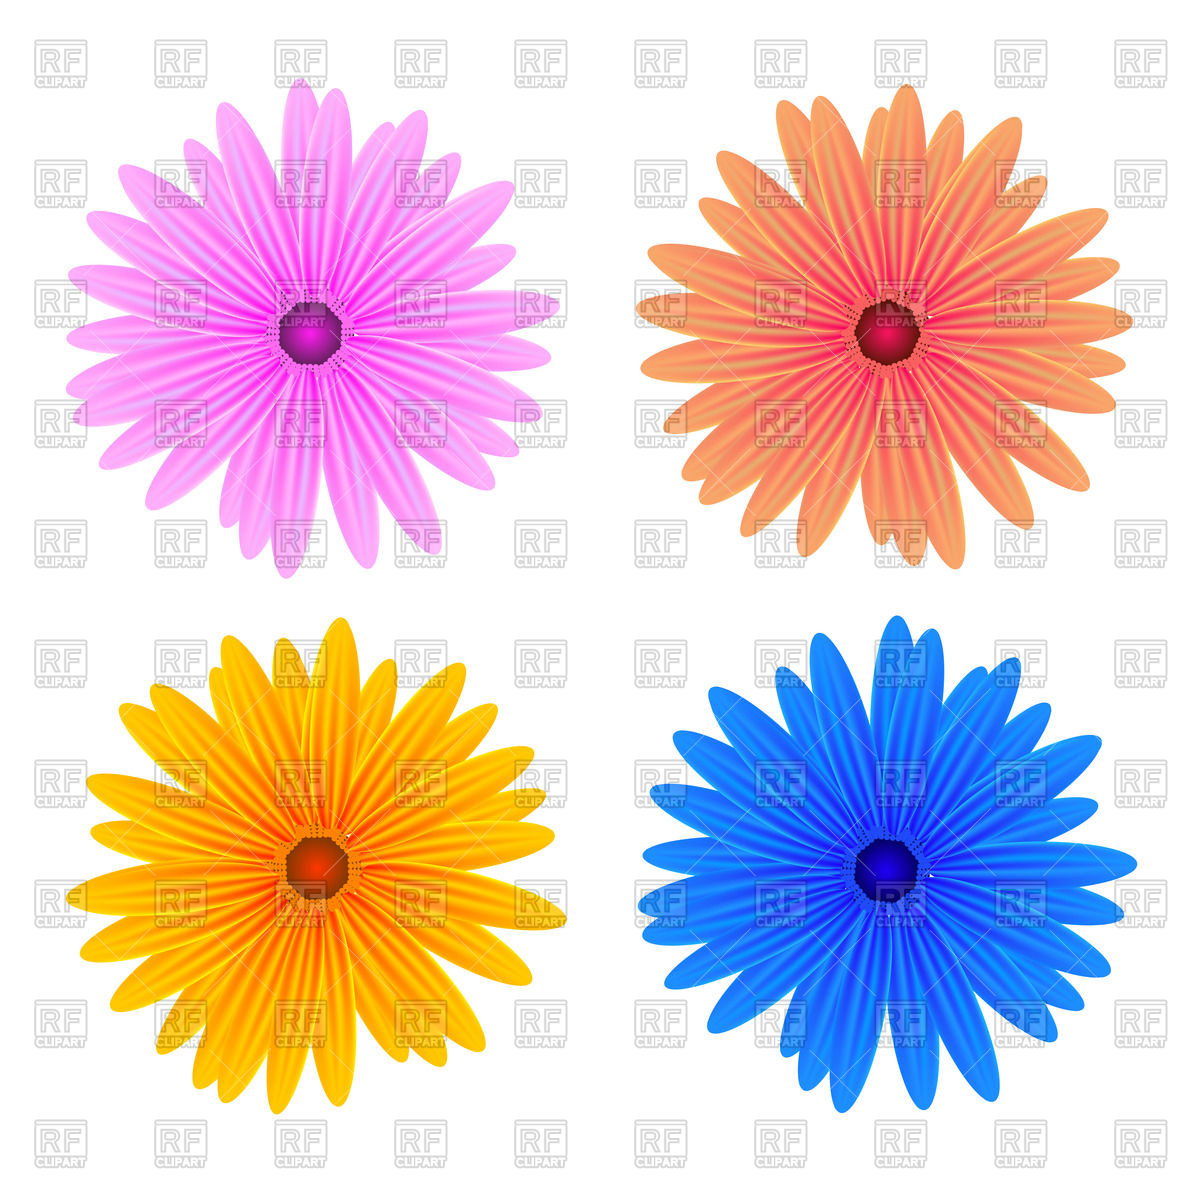 Spring Free Clipart At Getdrawings Free For Personal Use